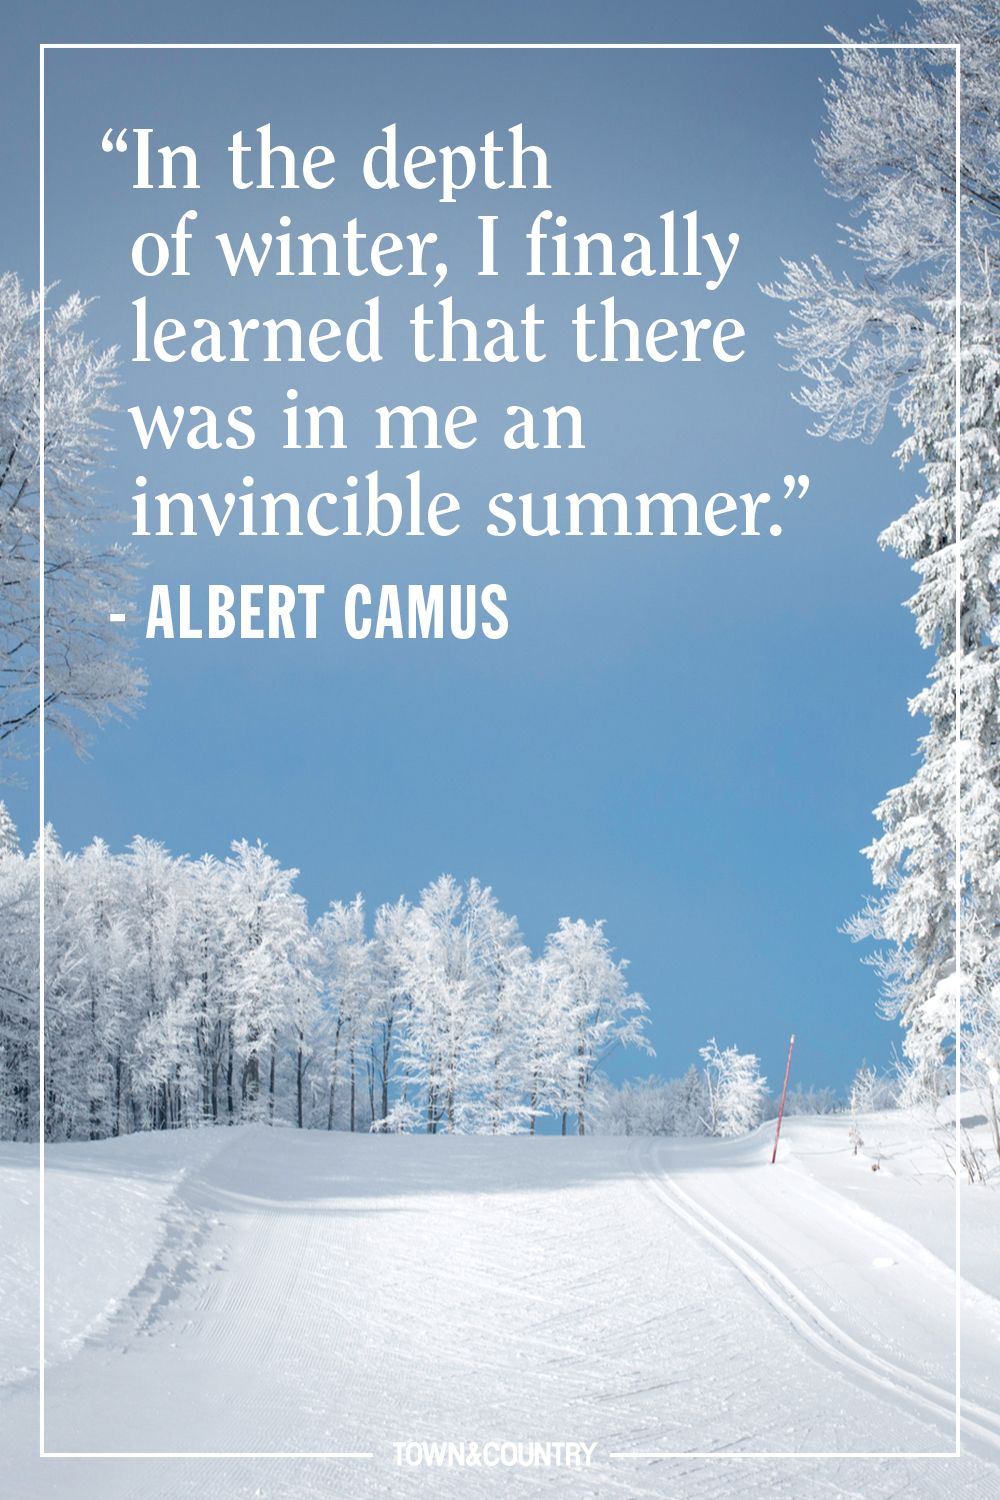 Image of: Twitter Town Country Magazine 22 Best Winter Quotes Cute Sayings About Snow The Winter Season